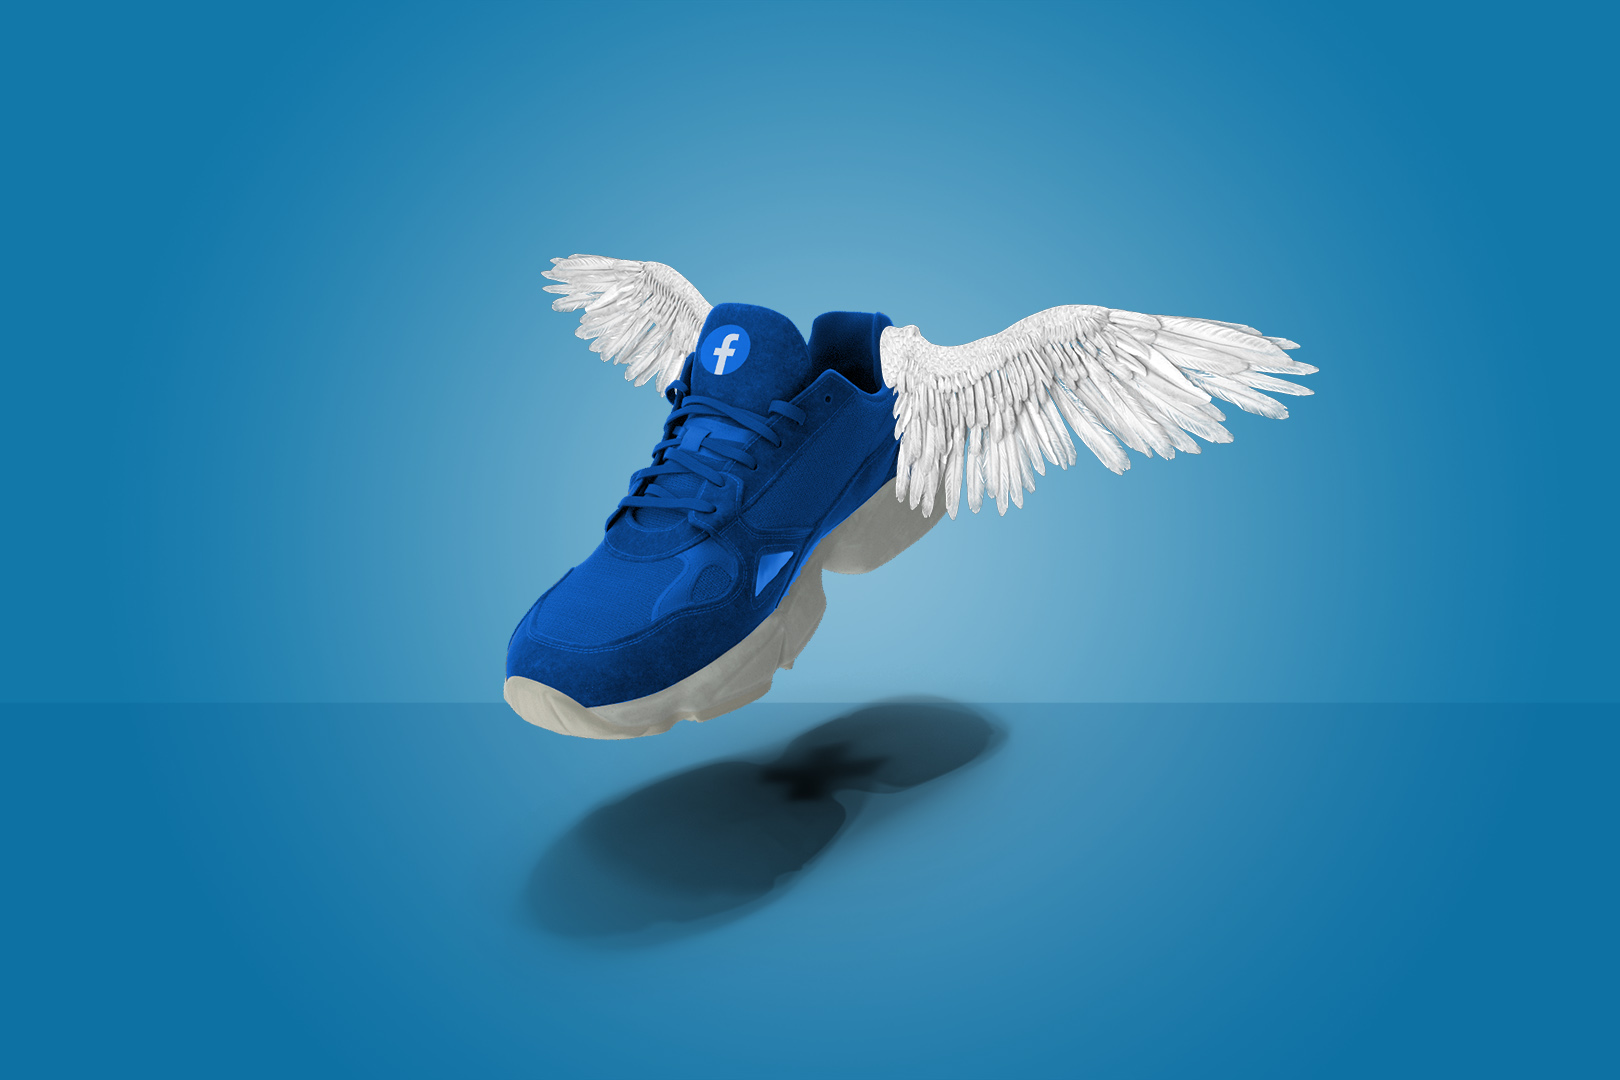 A sneaker flying with wings